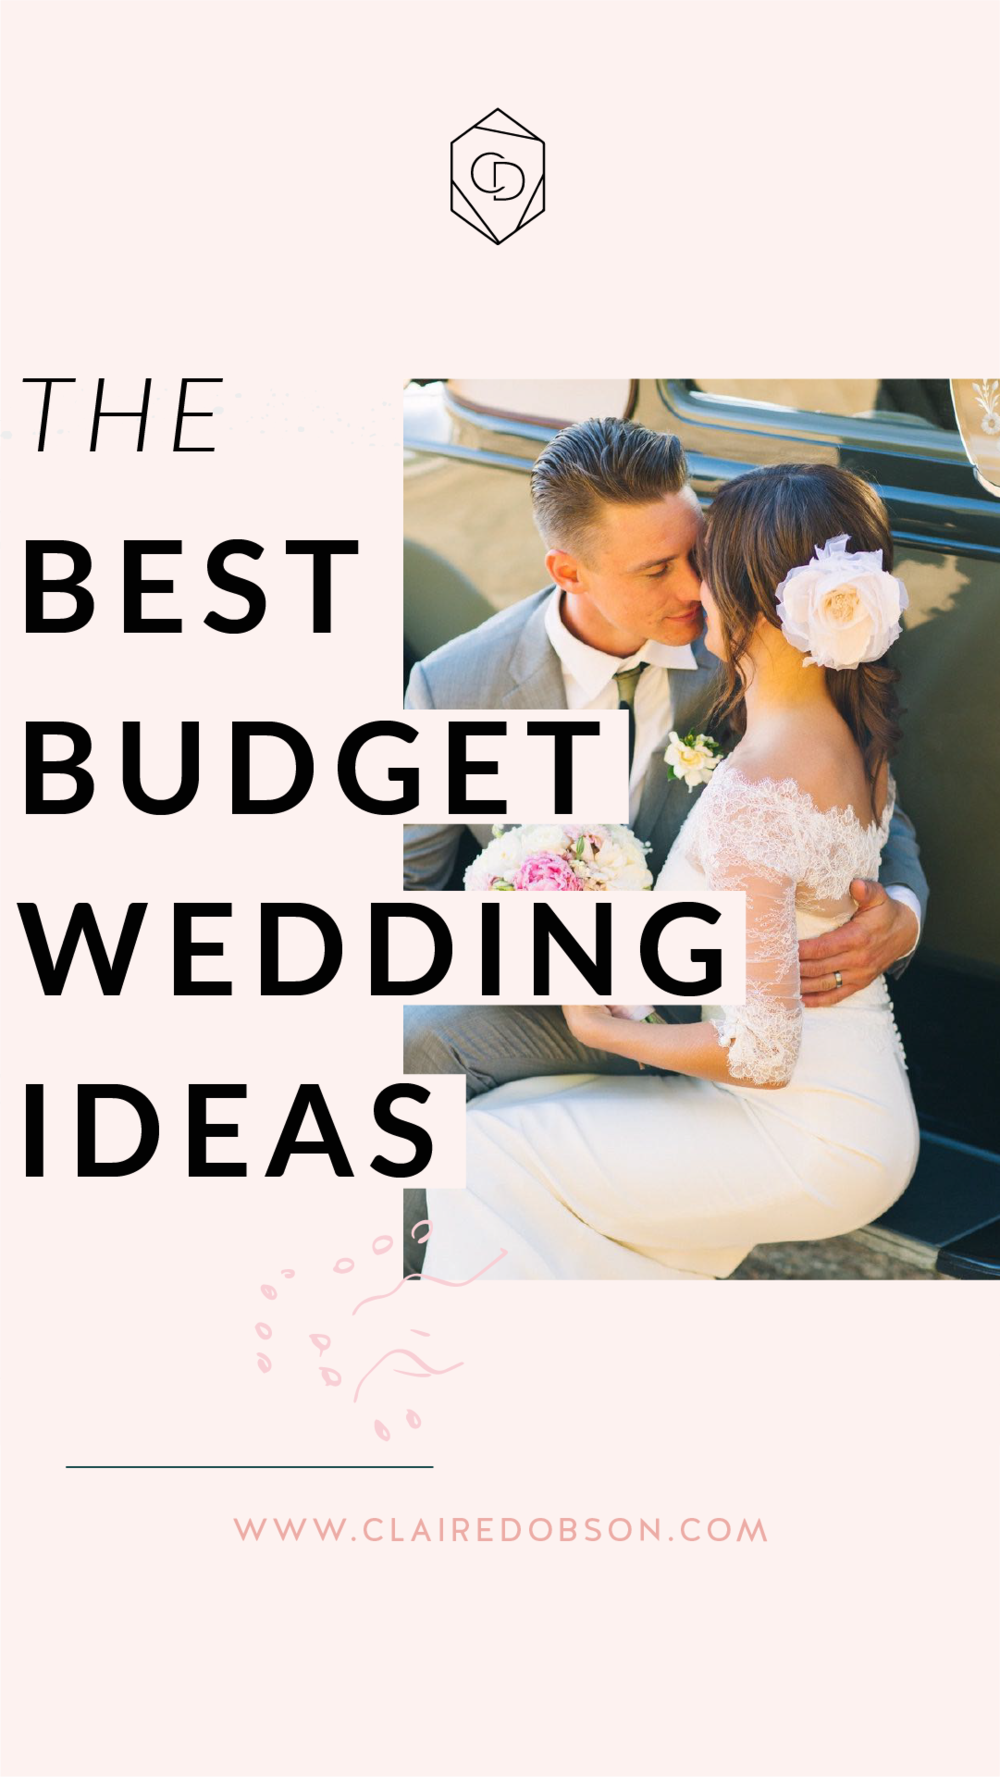 Budget wedding ideas don't mean that you have to compromise on quality. Make your wedding stand out whilst still saving money with these easy ideas #weddingplanning #weddingideas #weddingtips #budgetweddingideas #moneysavingtips #frugalliving